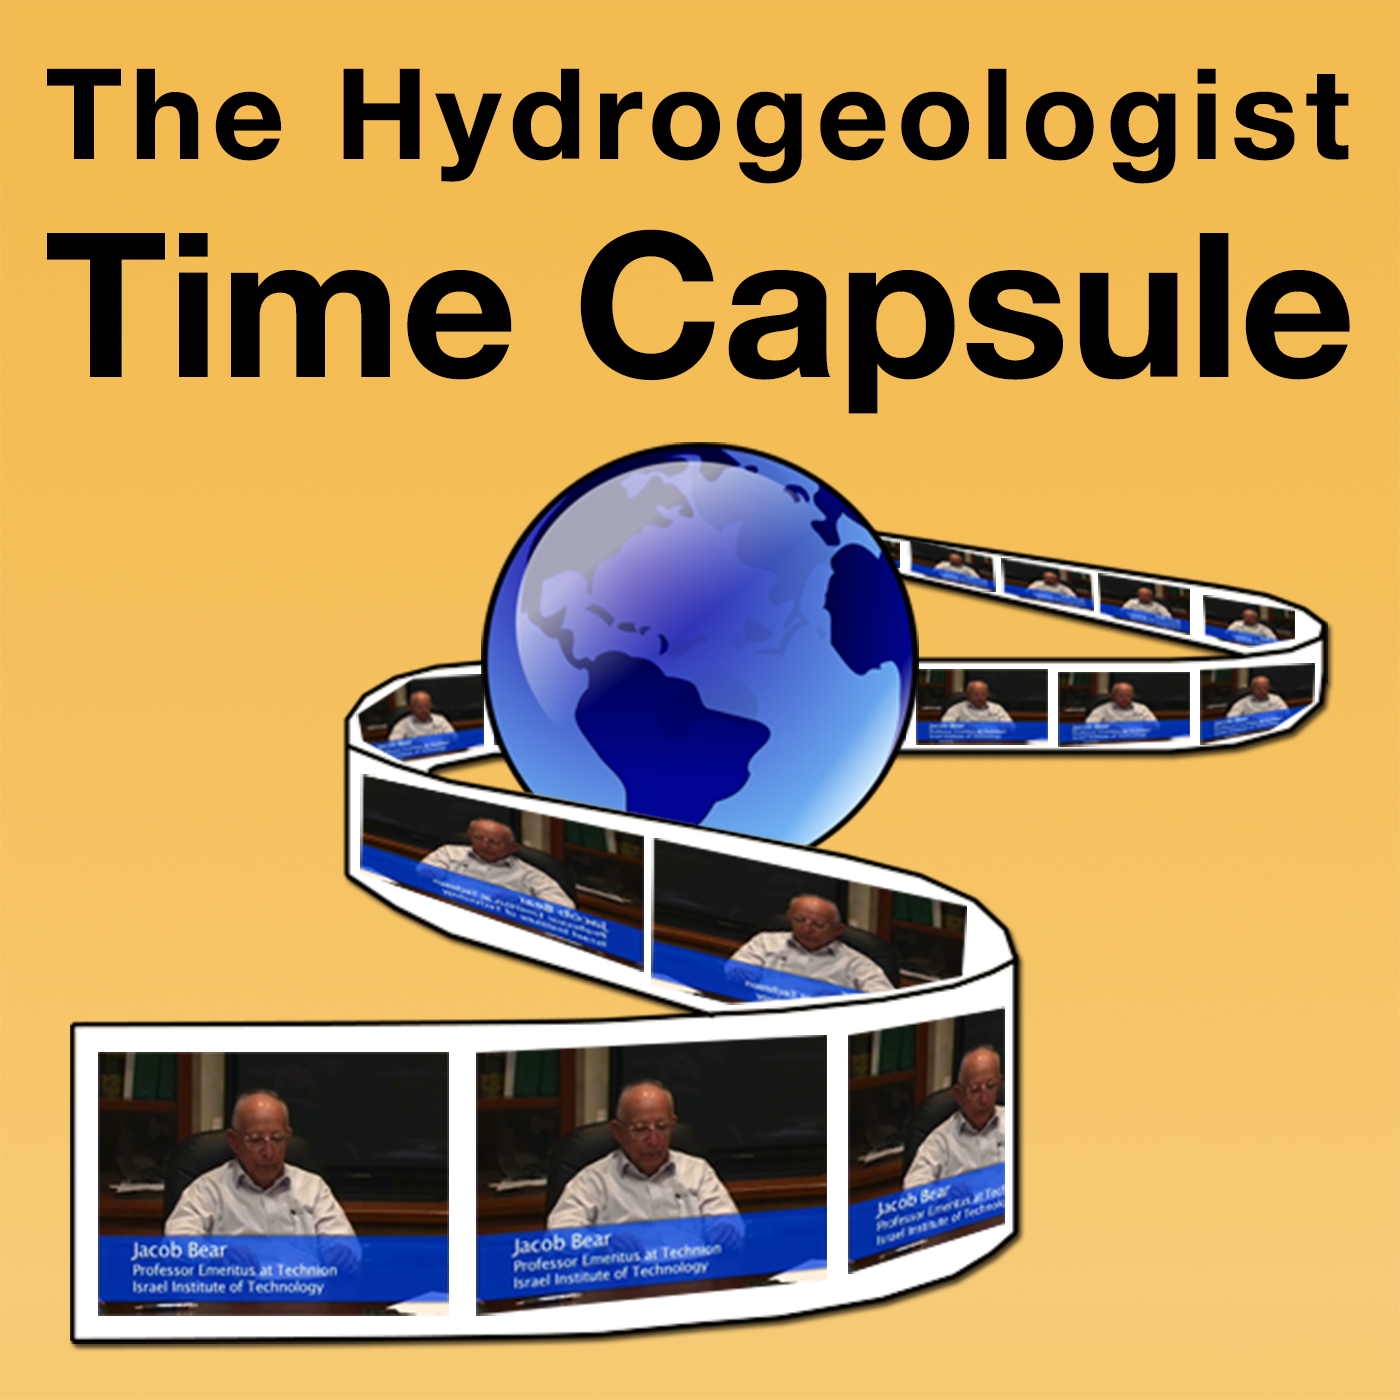 The Hydrogeologist Time Capsule